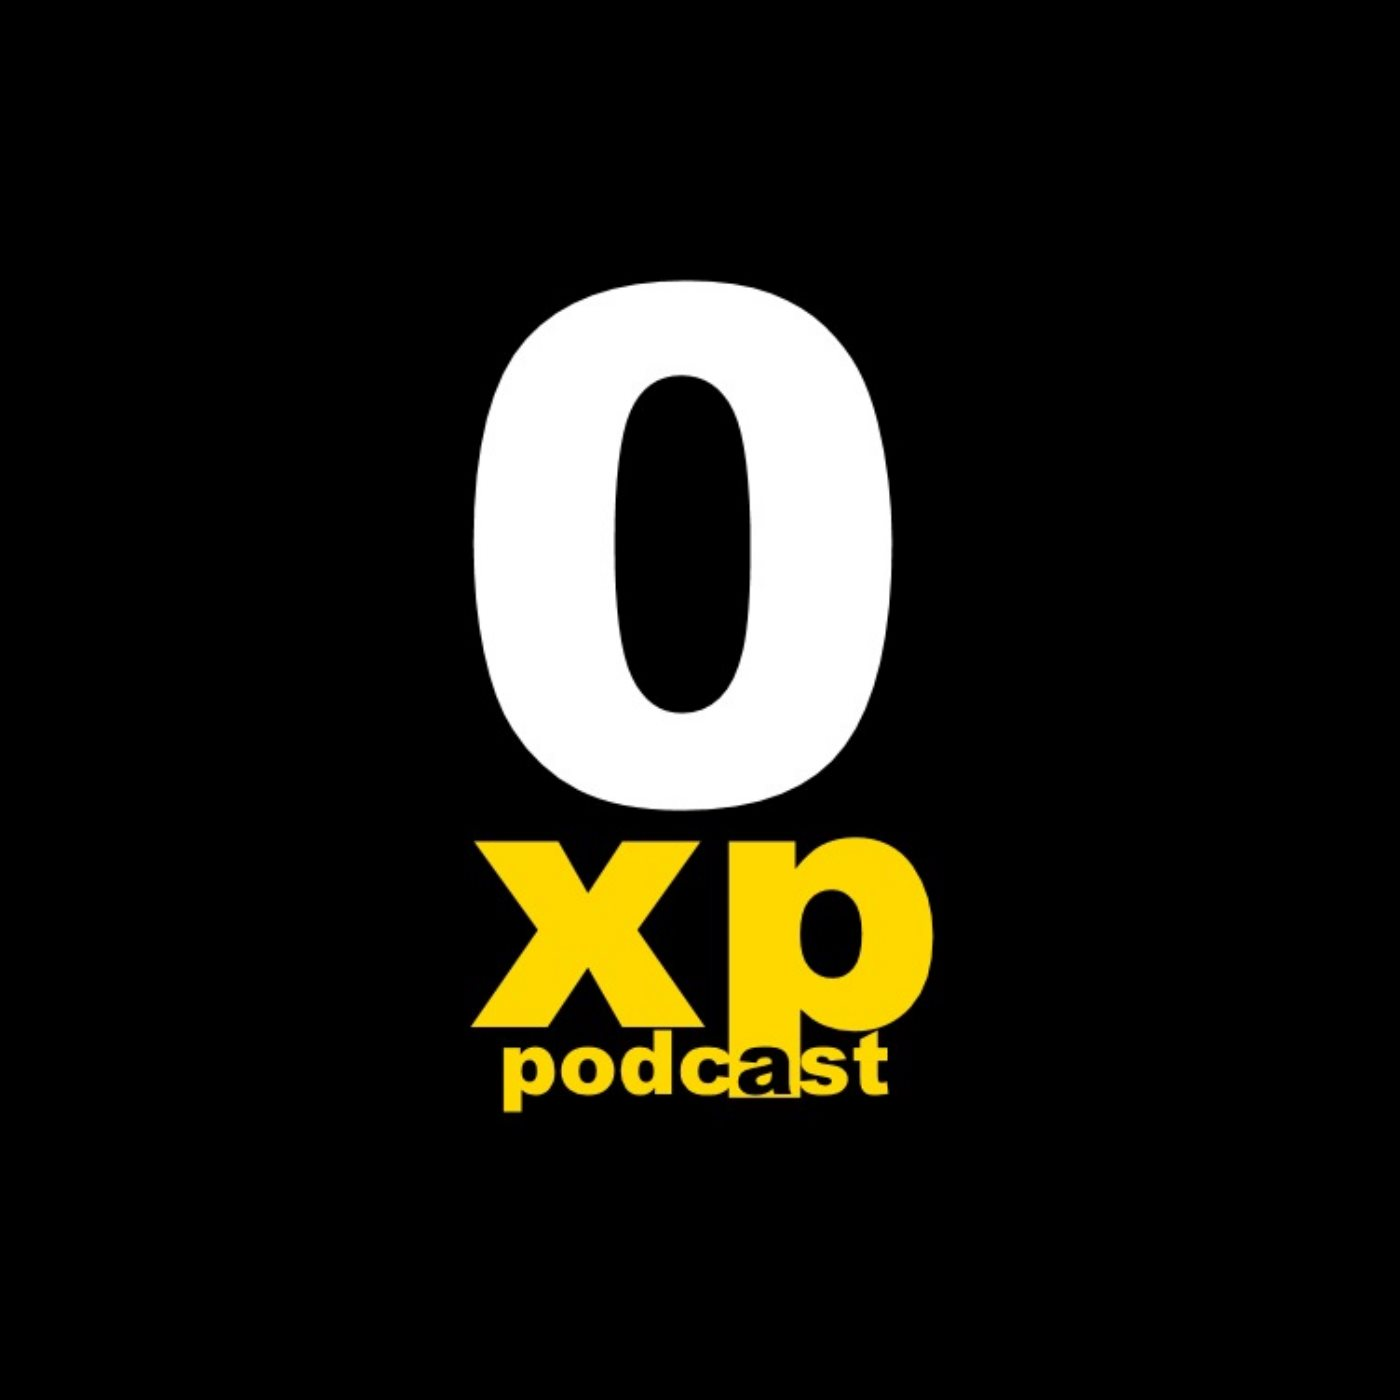 0XP Podcast